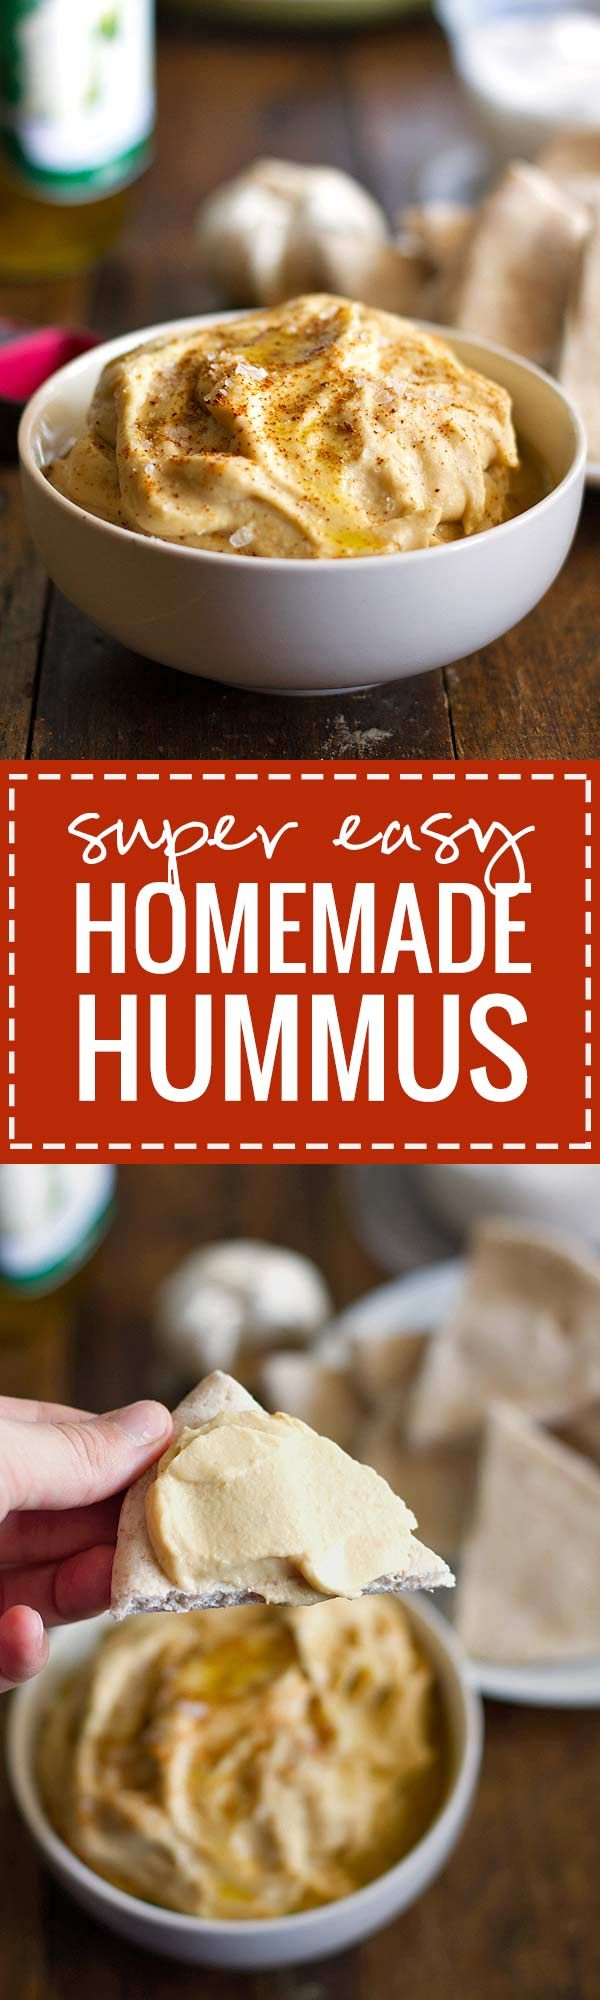 Super Easy Homemade Hummus - This hummus is simple and blended with fresh ingredients | pinchofyum.com